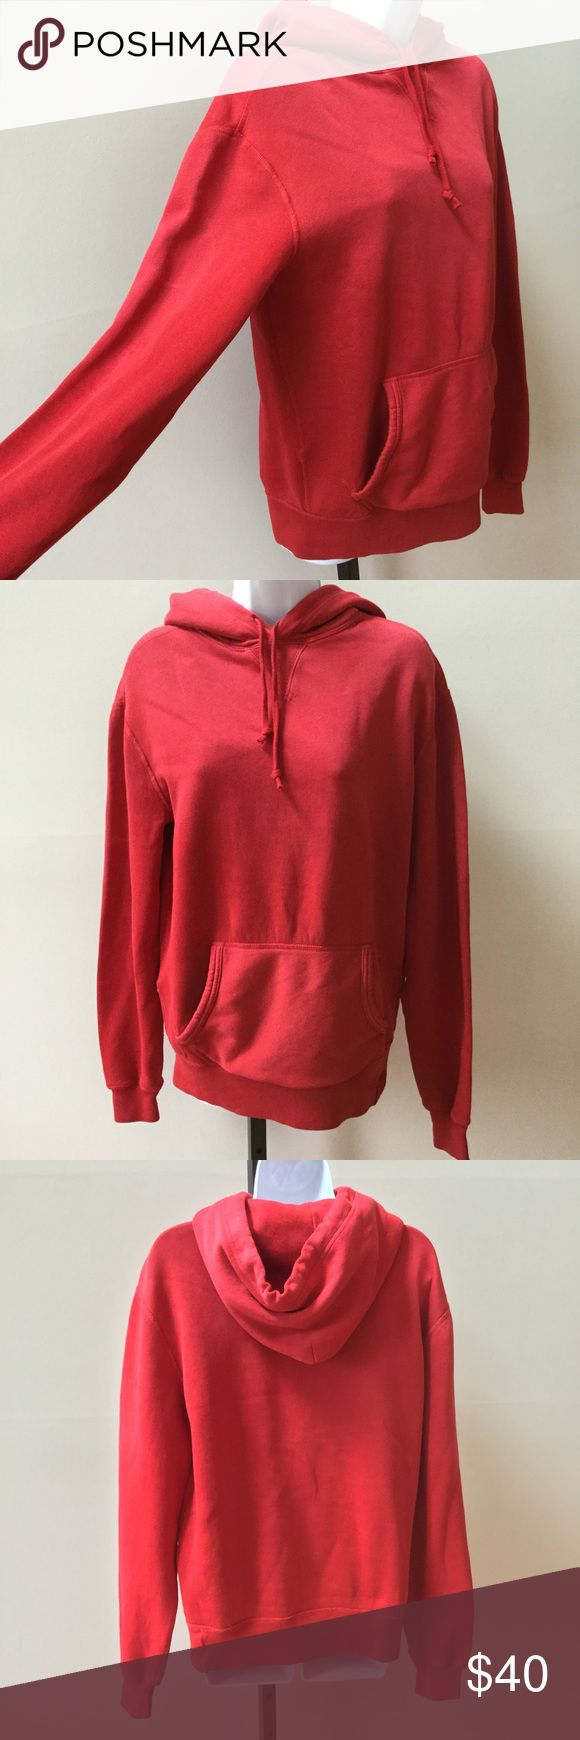 NWOT❤️Red Ralph Lauren Polo Hoodie❤️ NWOT❤️Red Ralph Lauren Polo Hoodie❤️ Men's S/P- will fit women XL Polo by Ralph Lauren Shirts Sweatshirts & Hoodies